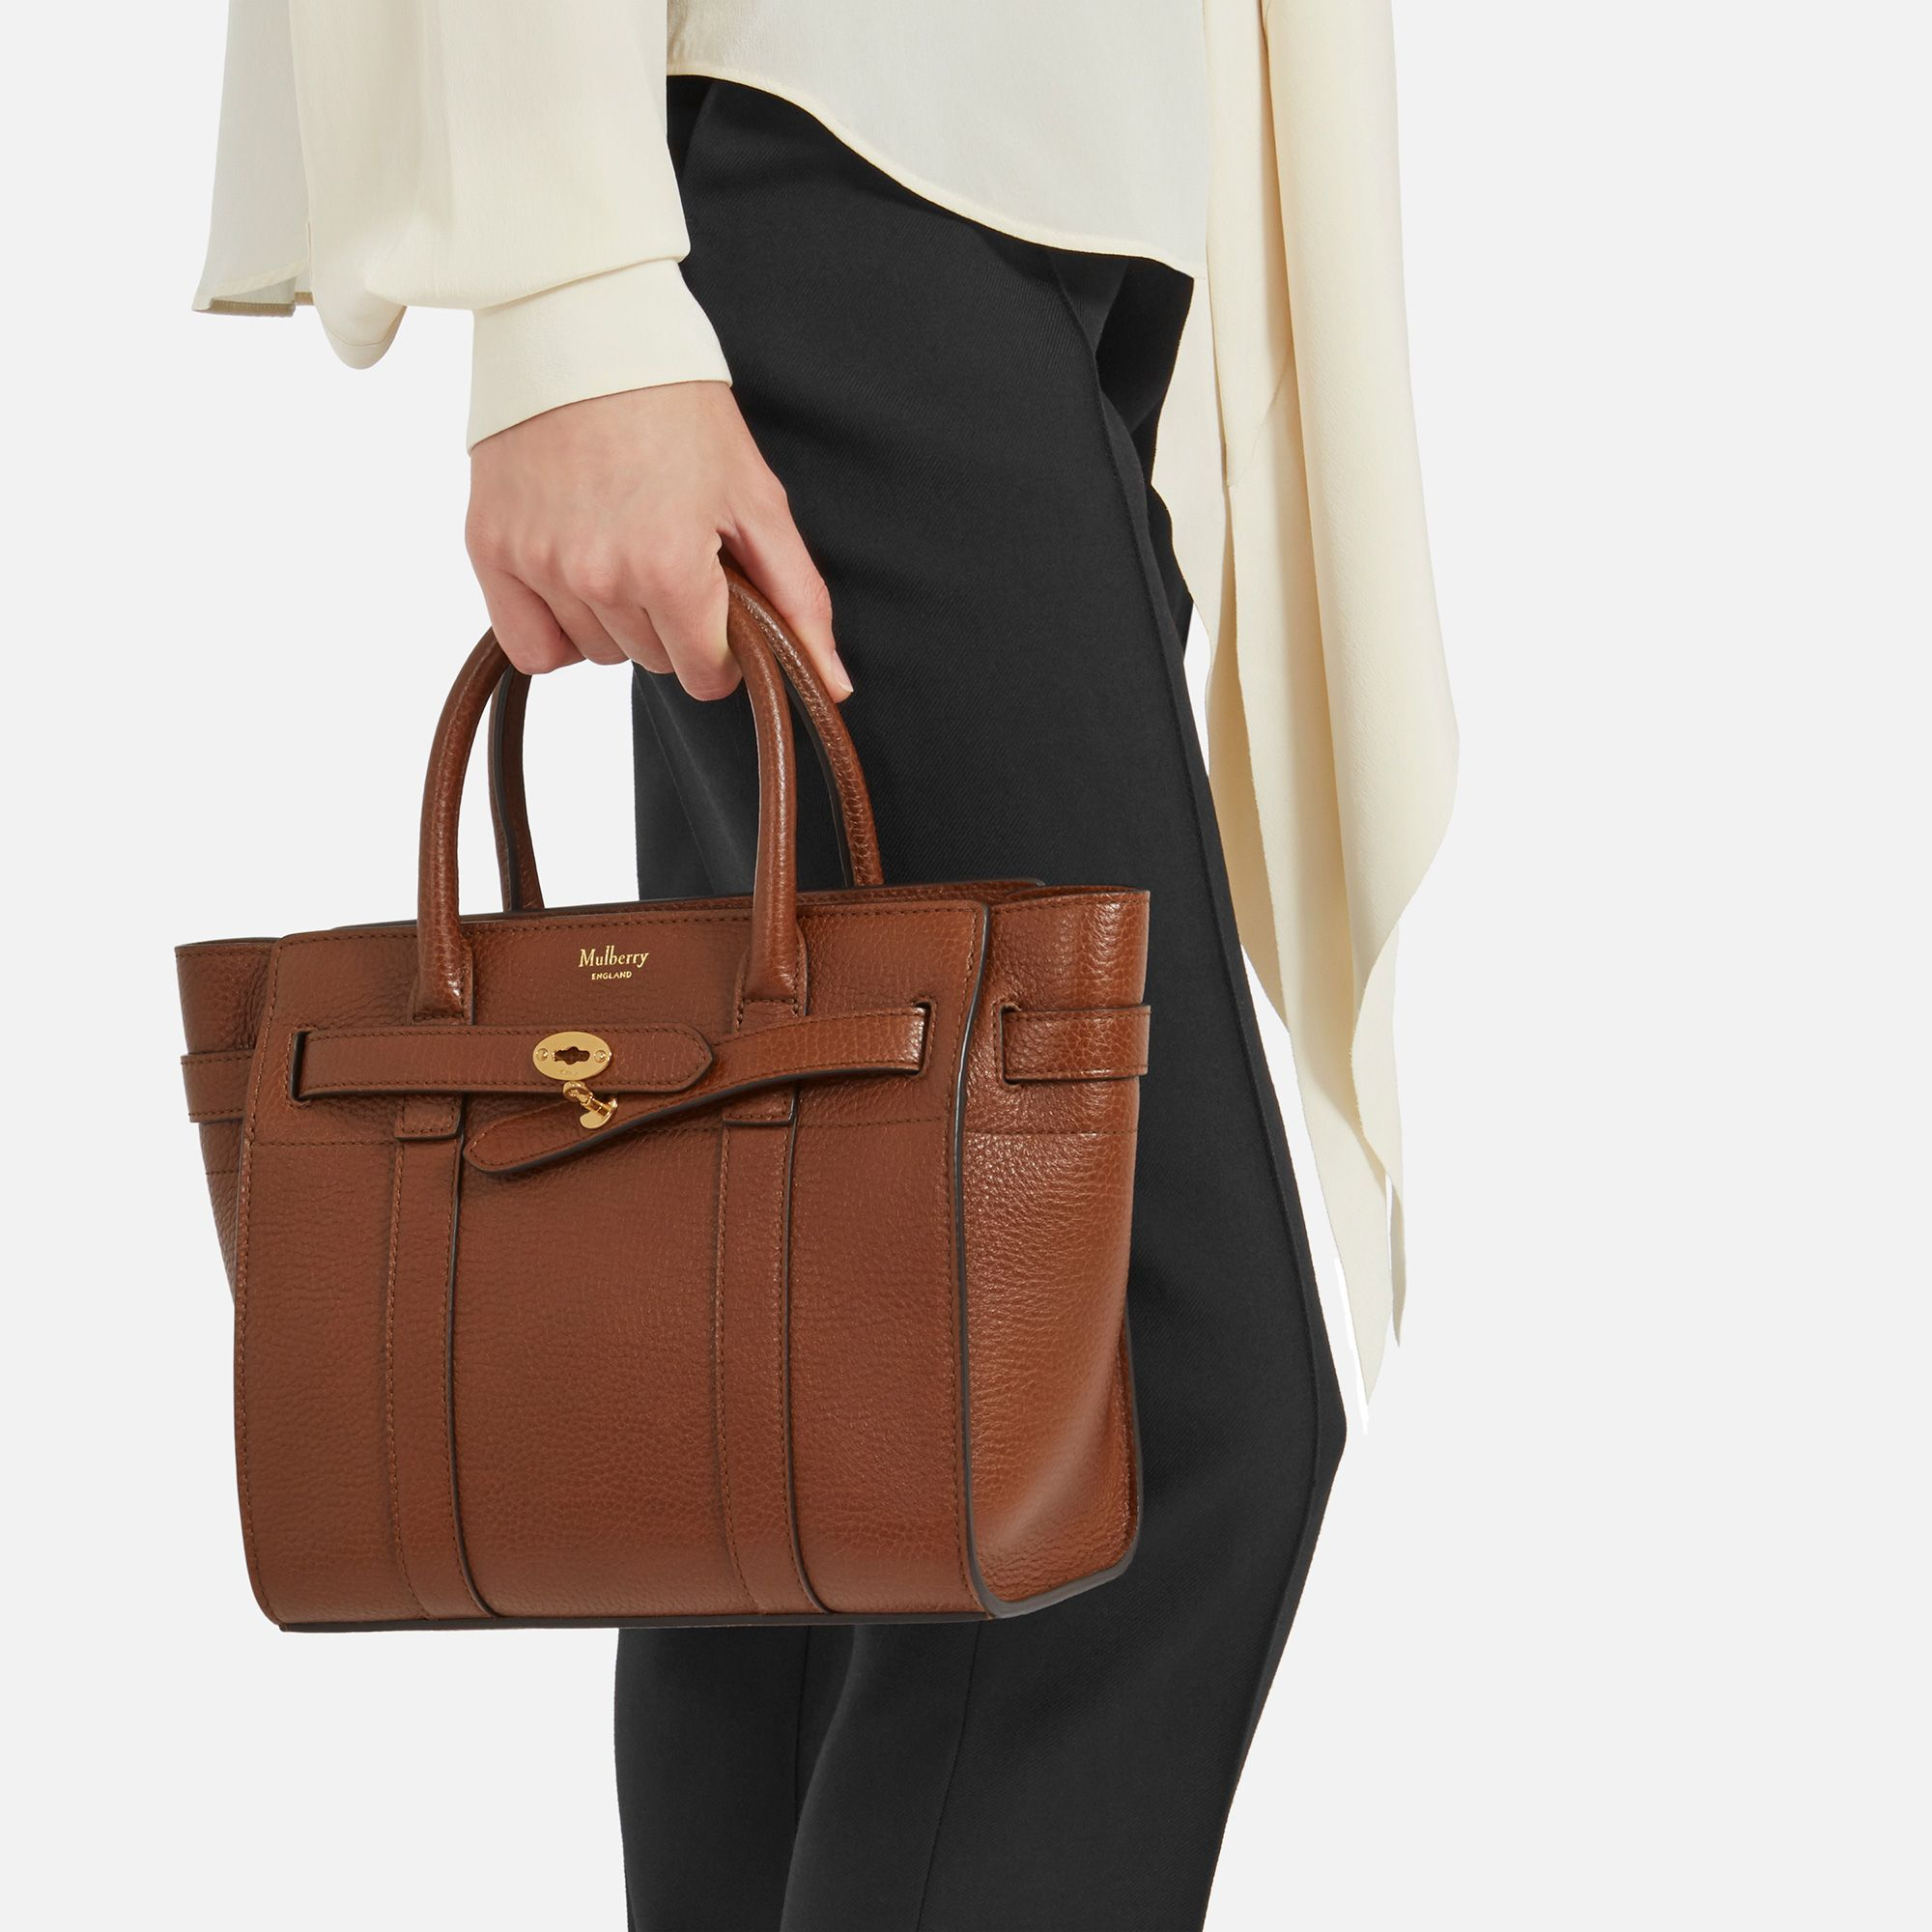 912e72a153 Shop the Oak Leather Mini Zipped Bayswater on Mulberry.com. A new arrival  for